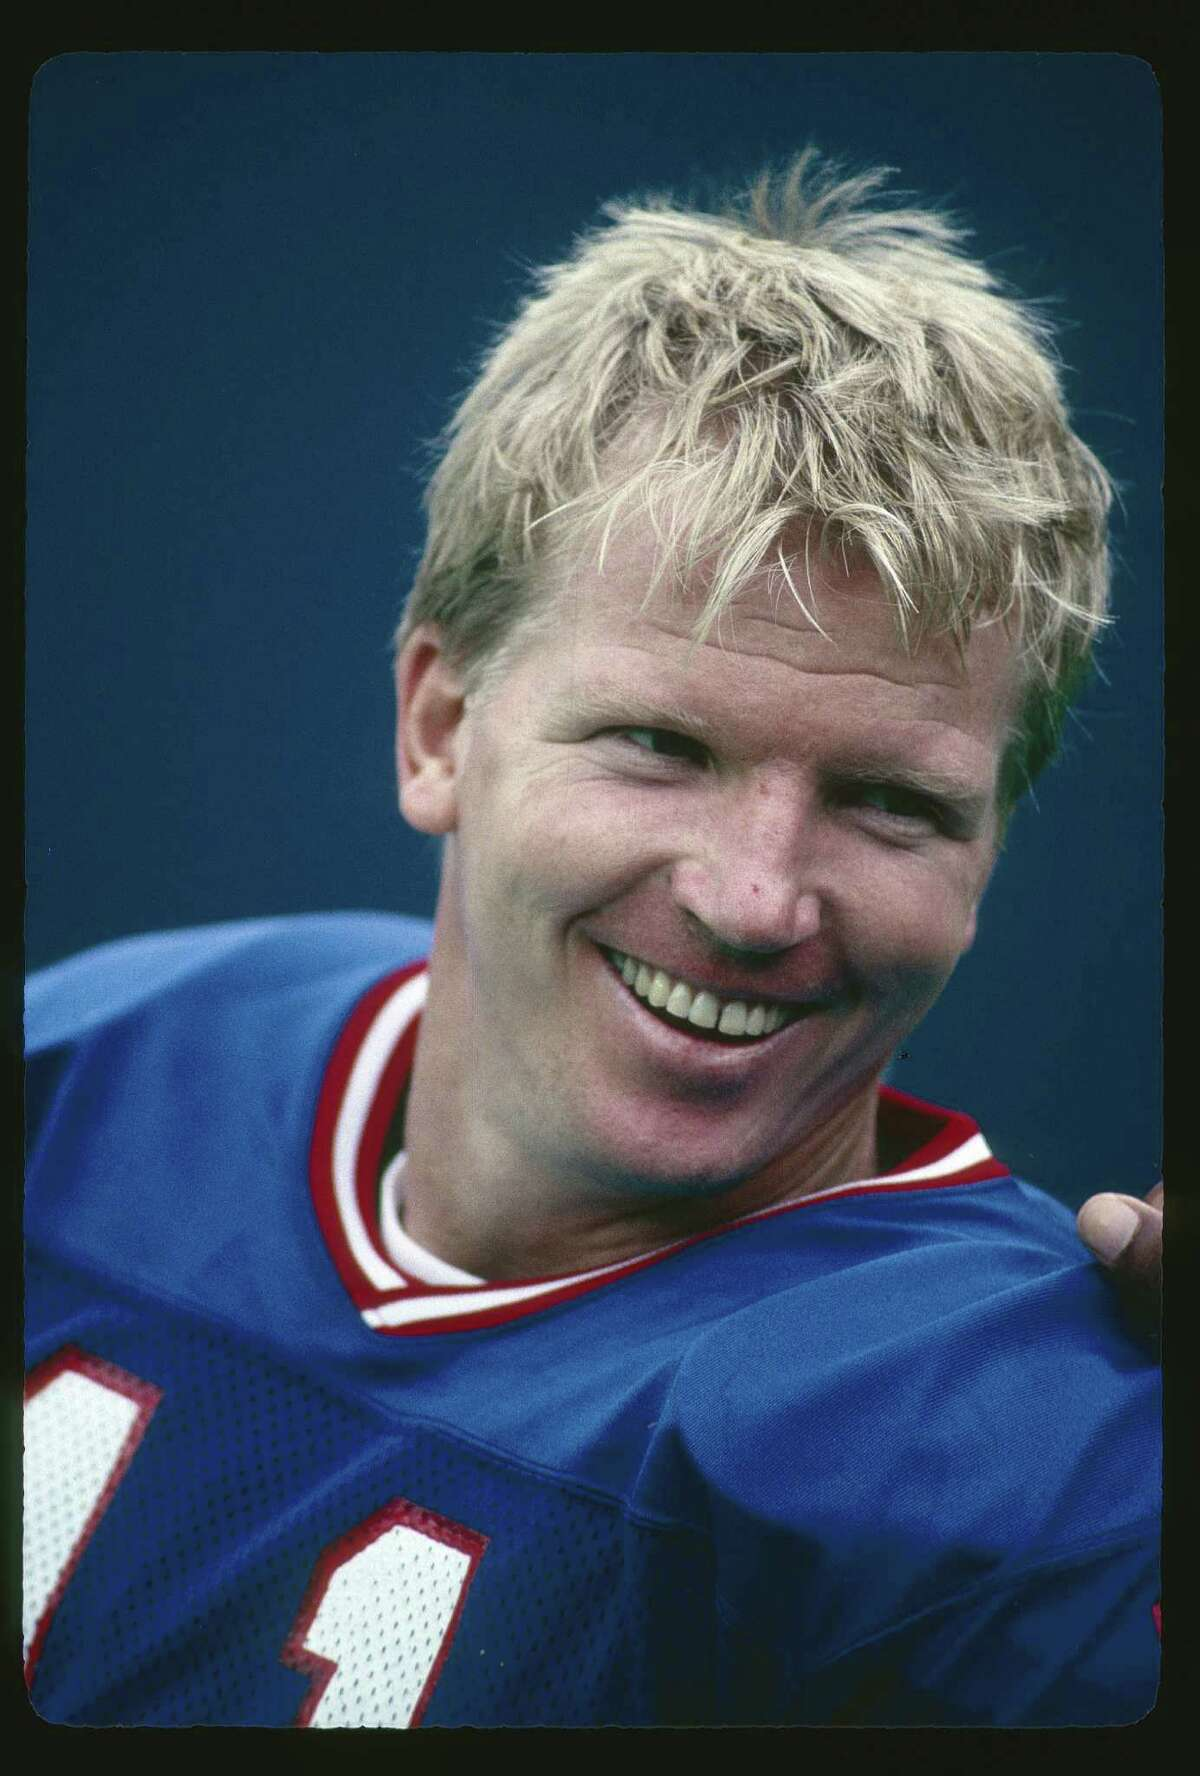 EAST RUTHERFORD, NJ - CIRCA 1980's: Quarterback Phil Simms #11 of the New York Giants on the sidelines during a circa 1980's NFL football game at Giant Stadium in East Rutherford, New Jersey. Simms played for the Giants from 1979-93. (Photo by Focus on Sport/Getty Images)